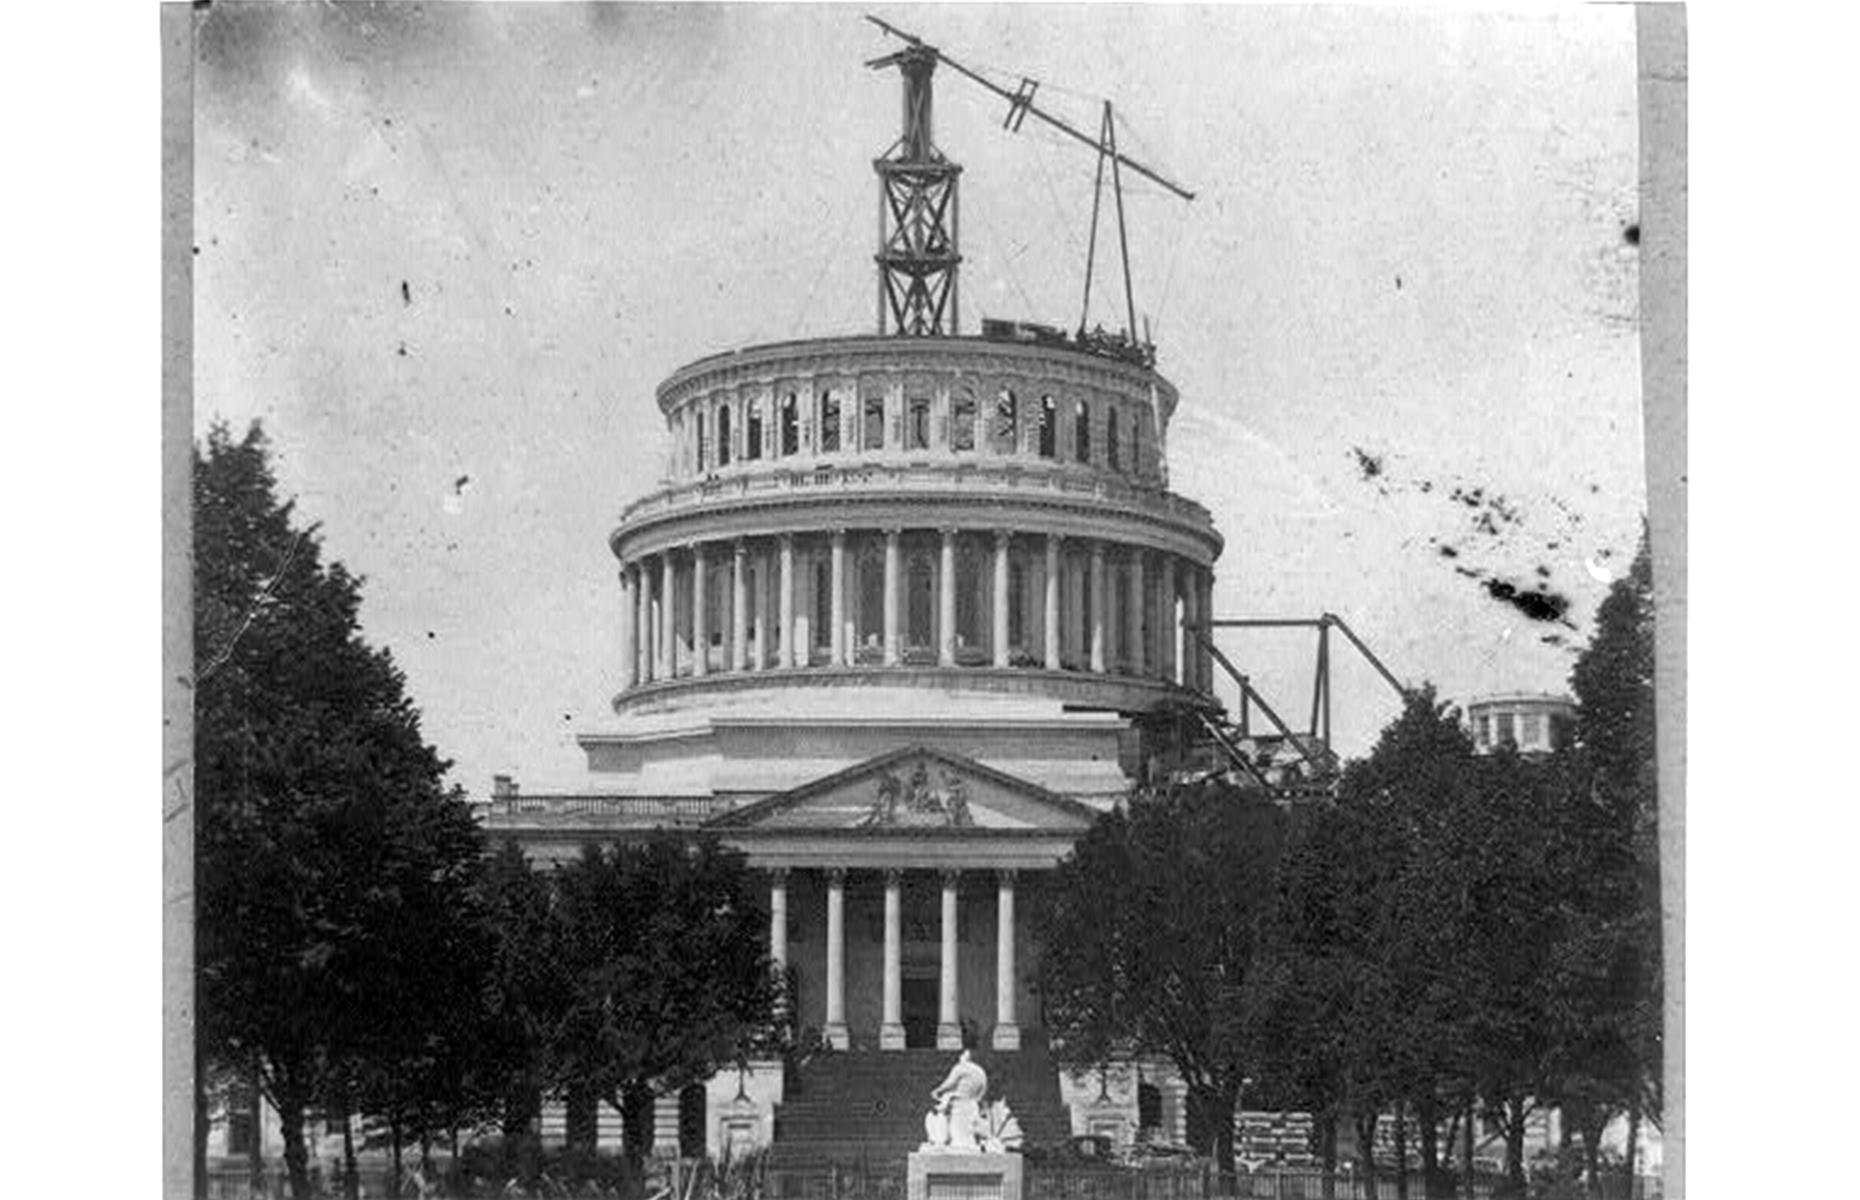 Slide 20 of 41: Though the first wing of the Capitol Building was finished in 1800, the building as we see it today wouldn't take shape until later. The current, cast-iron dome, designed by American architect Thomas Ustick Walter, replaced an earlier one built by Charles Bulfinch in the 1860s. It rises to 287 feet (87m) and was modeled on that of St Peter's Basilica in Vatican City – it's pictured here in 1861 during its construction.